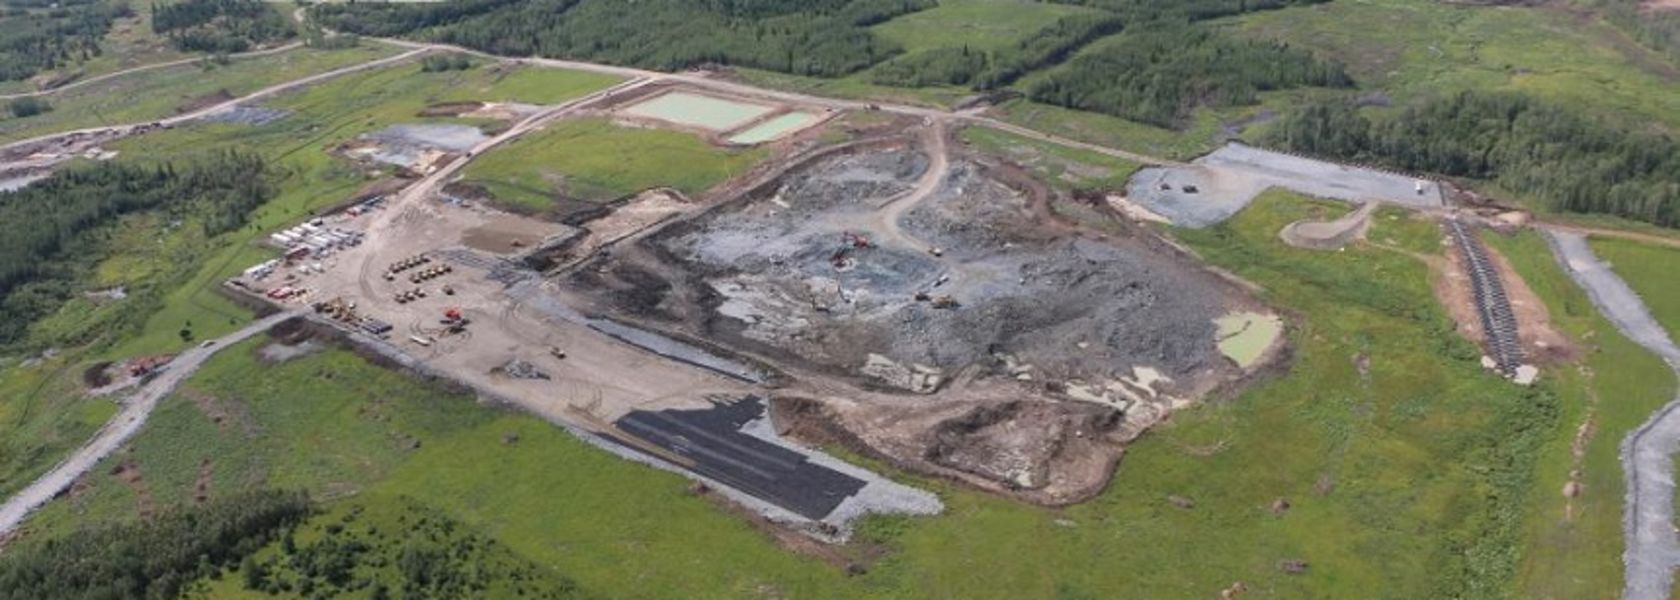 New Gold reduces Rainy River mine life - Mining Journal